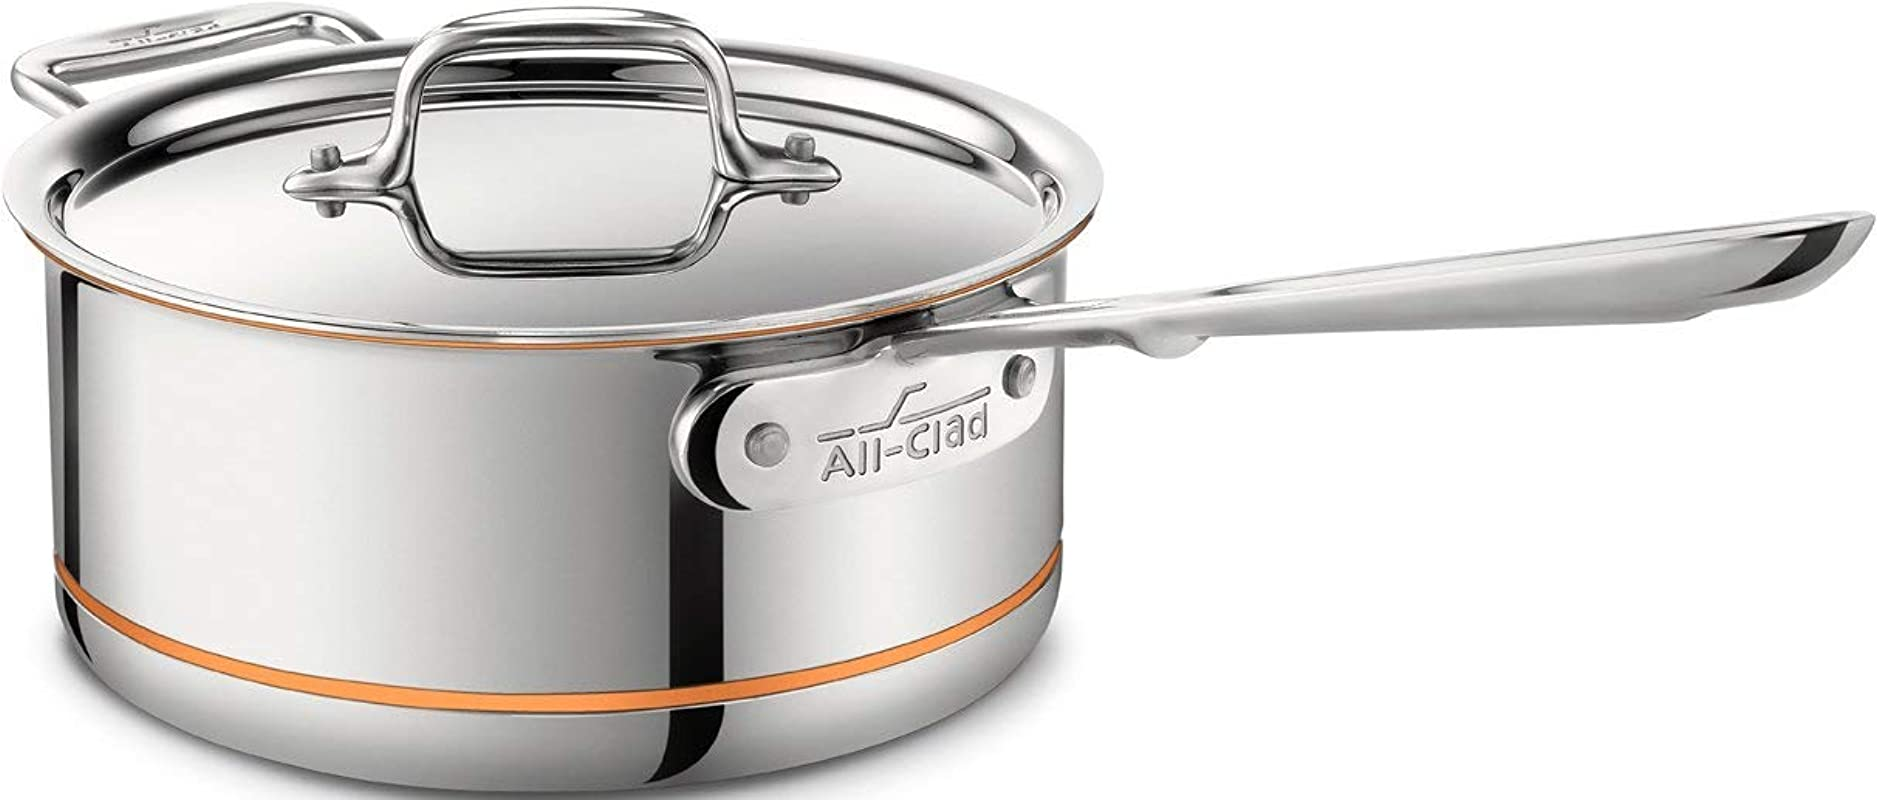 All Clad 6203 SS Copper Core 5 Ply Bonded Dishwasher Safe Saucepan With Lid Cookware 3 Quart Silver